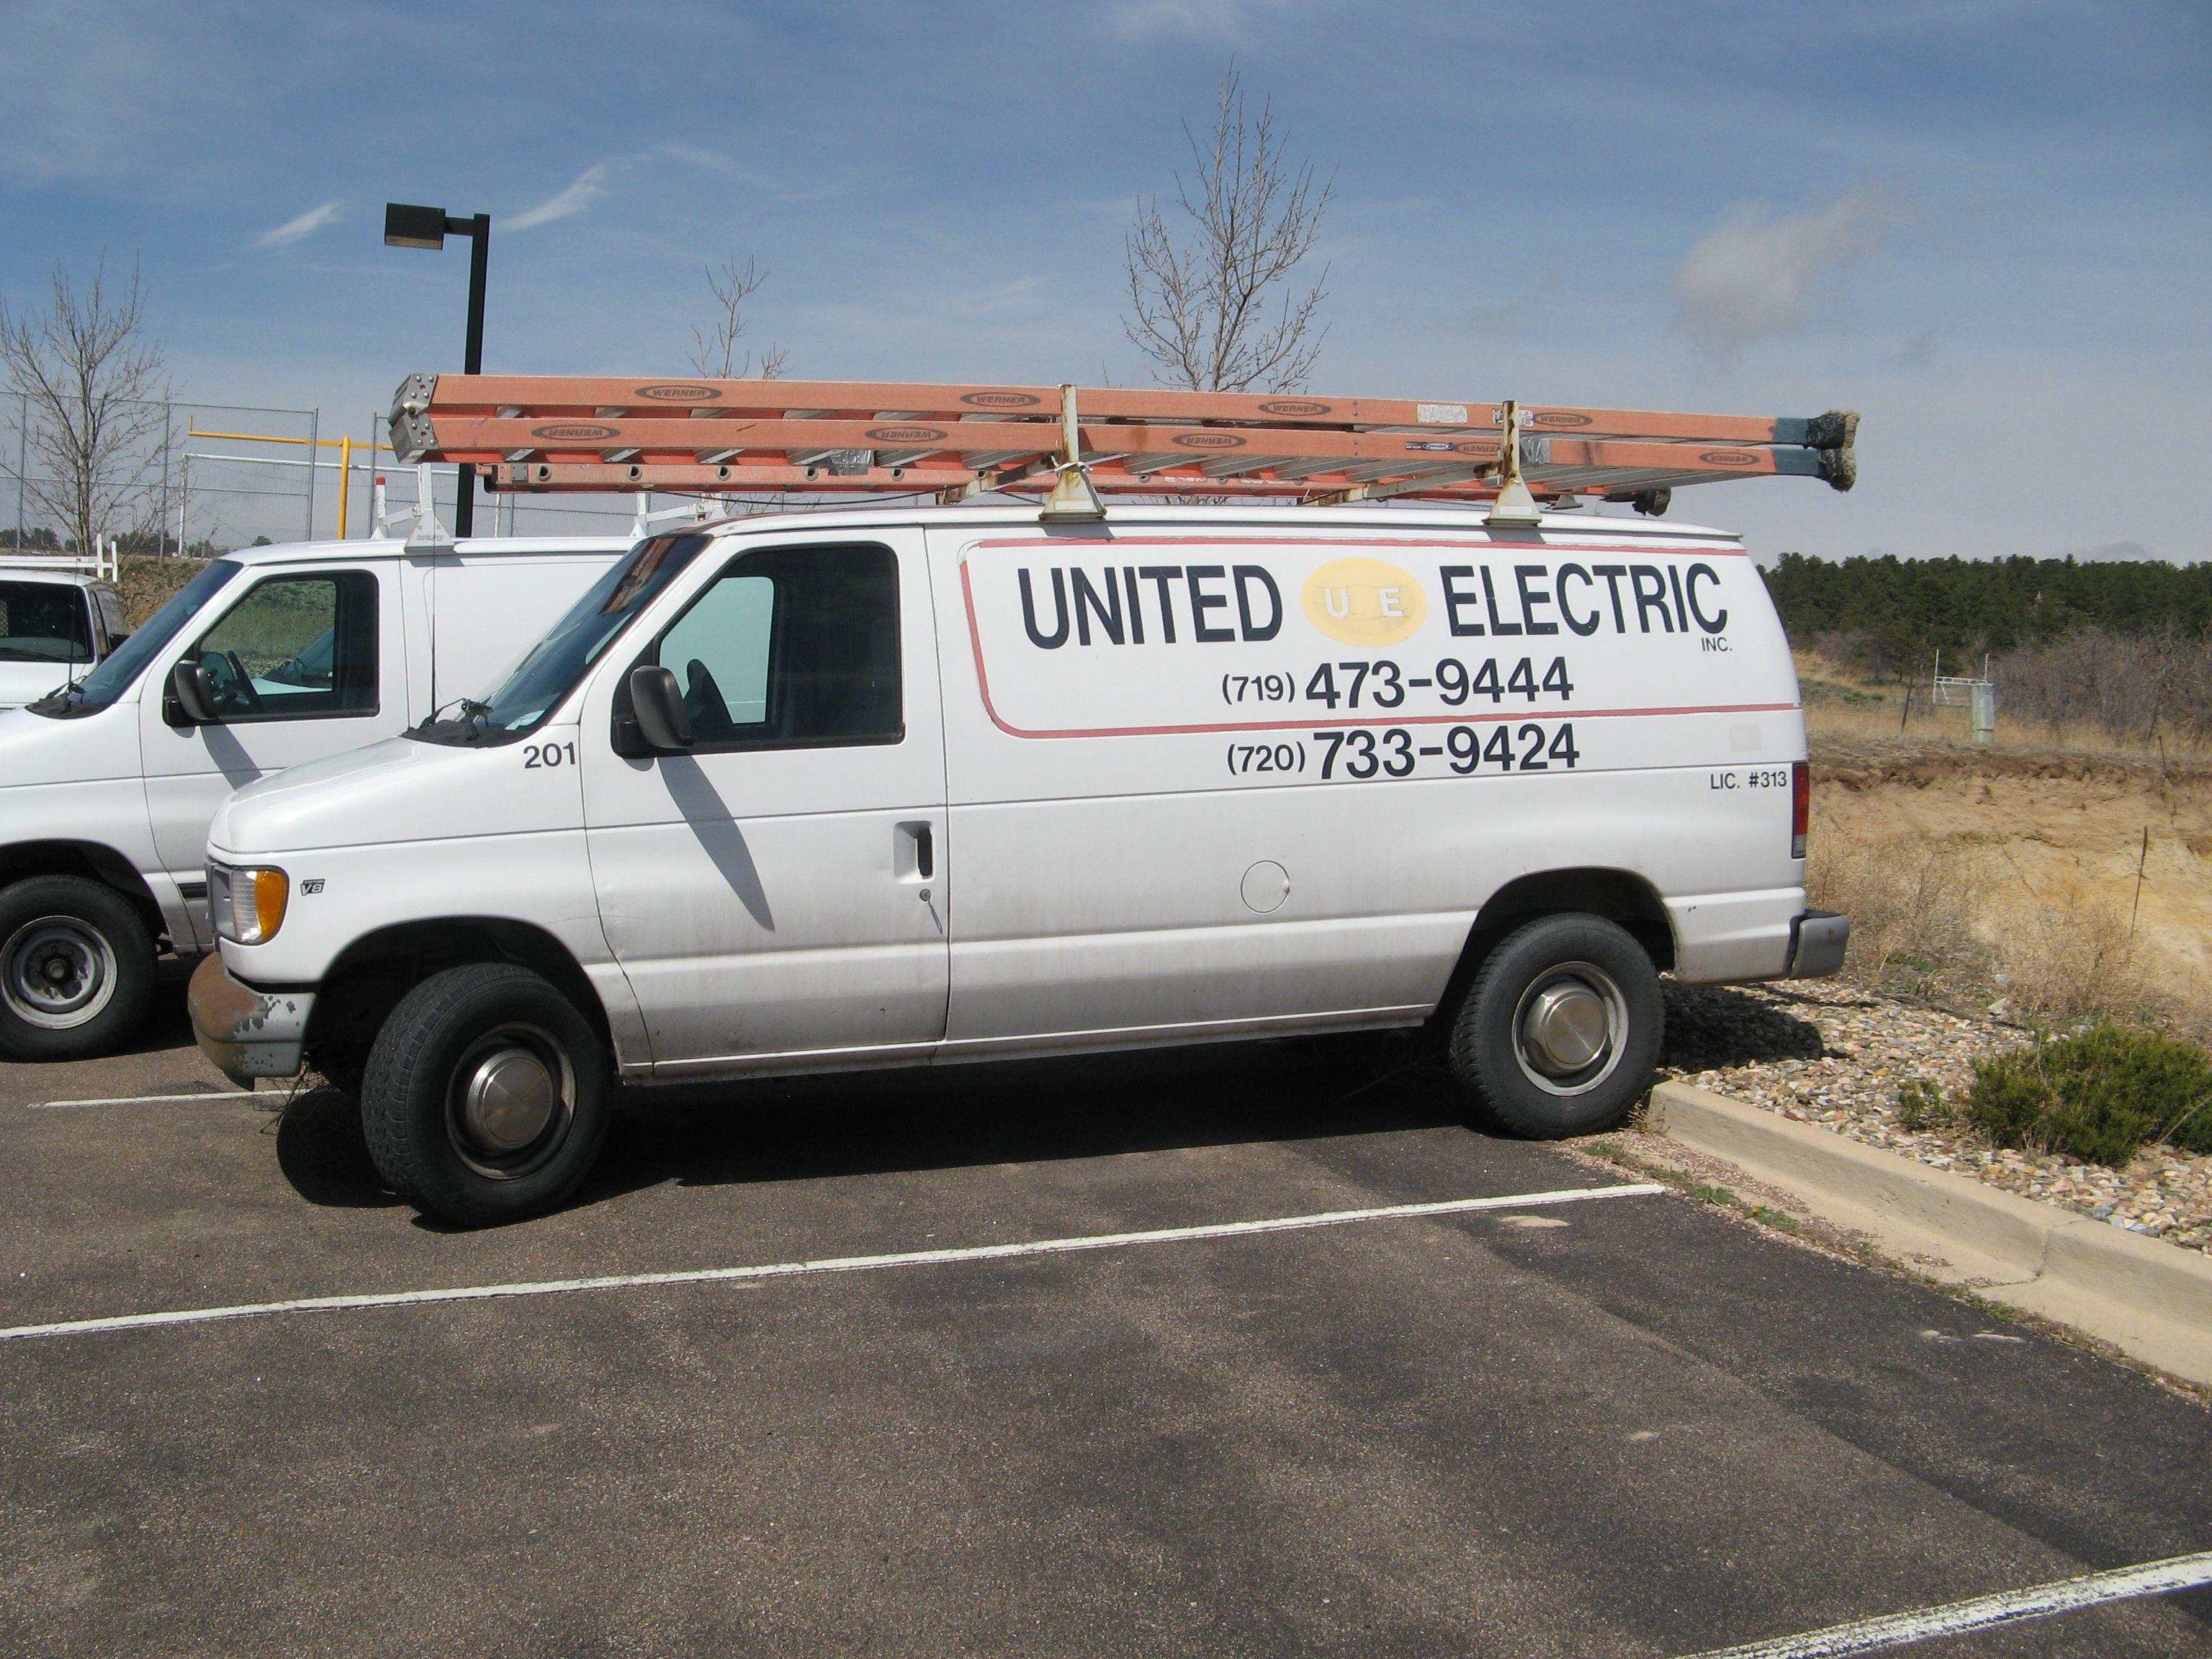 00 Ford Panel Van Triton V8 With Images Vans Vehicles The Unit